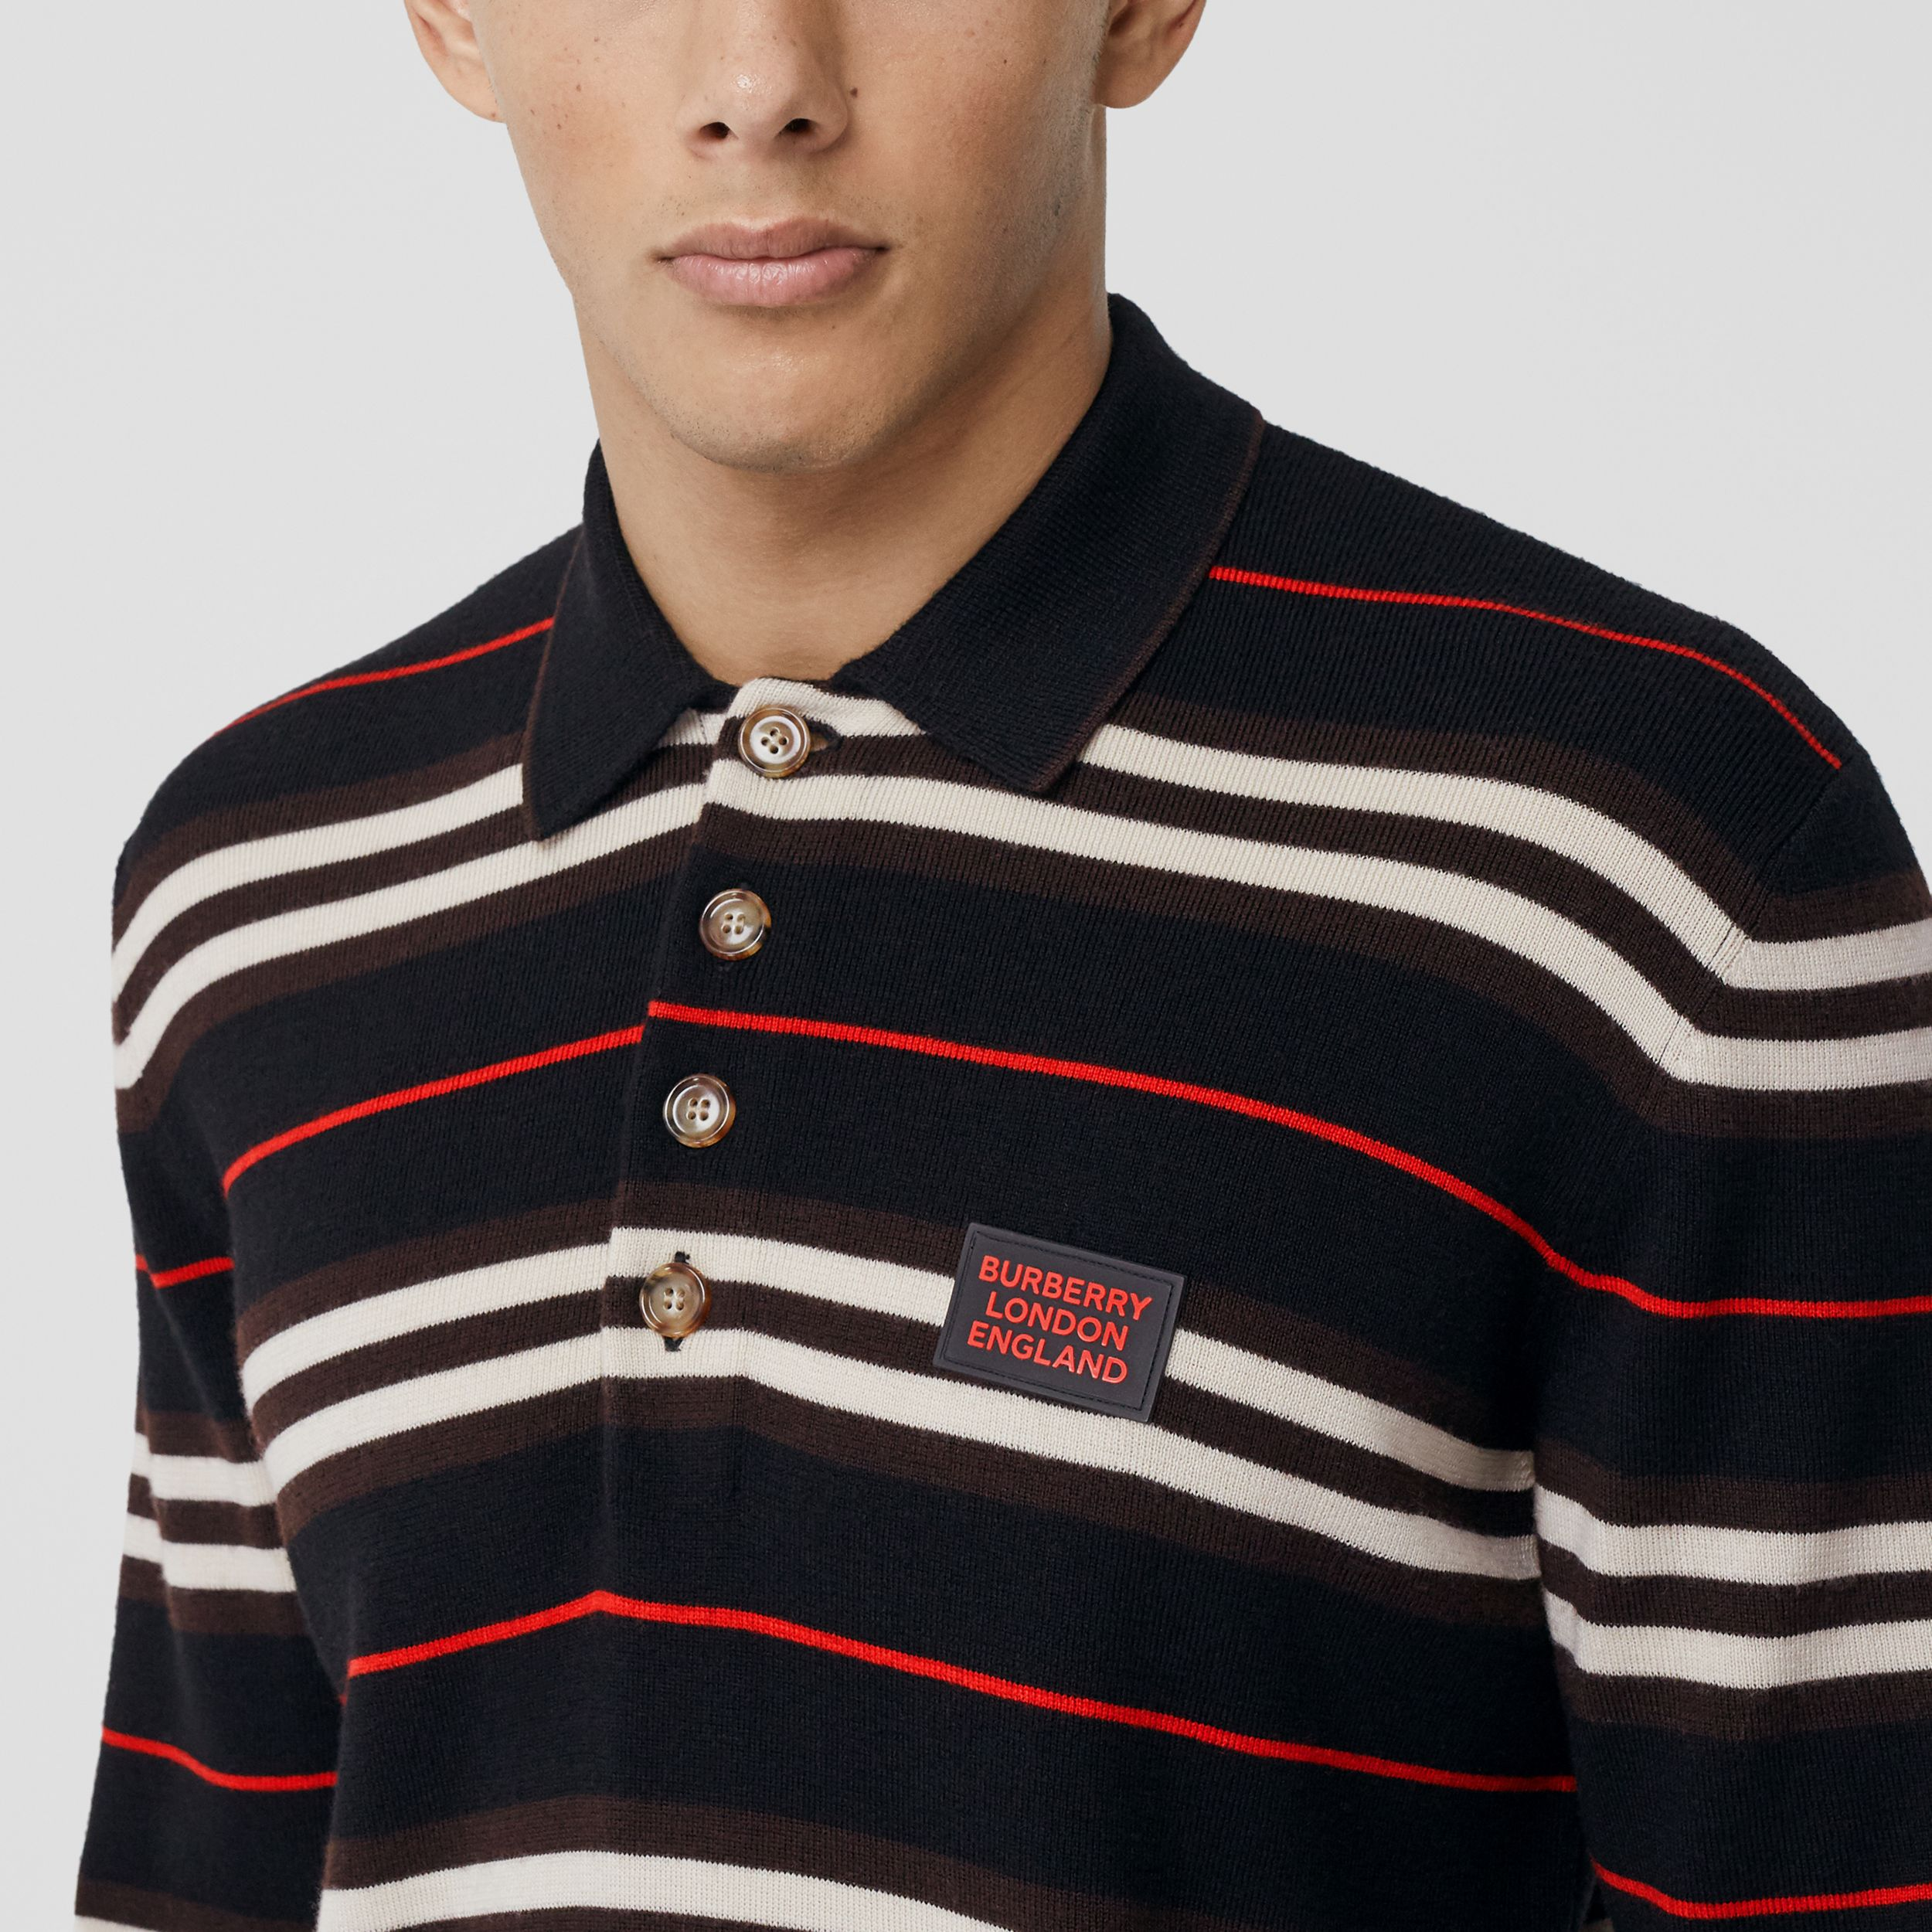 Long-sleeve Icon Stripe Merino Wool Polo Shirt in Black - Men | Burberry United States - 2